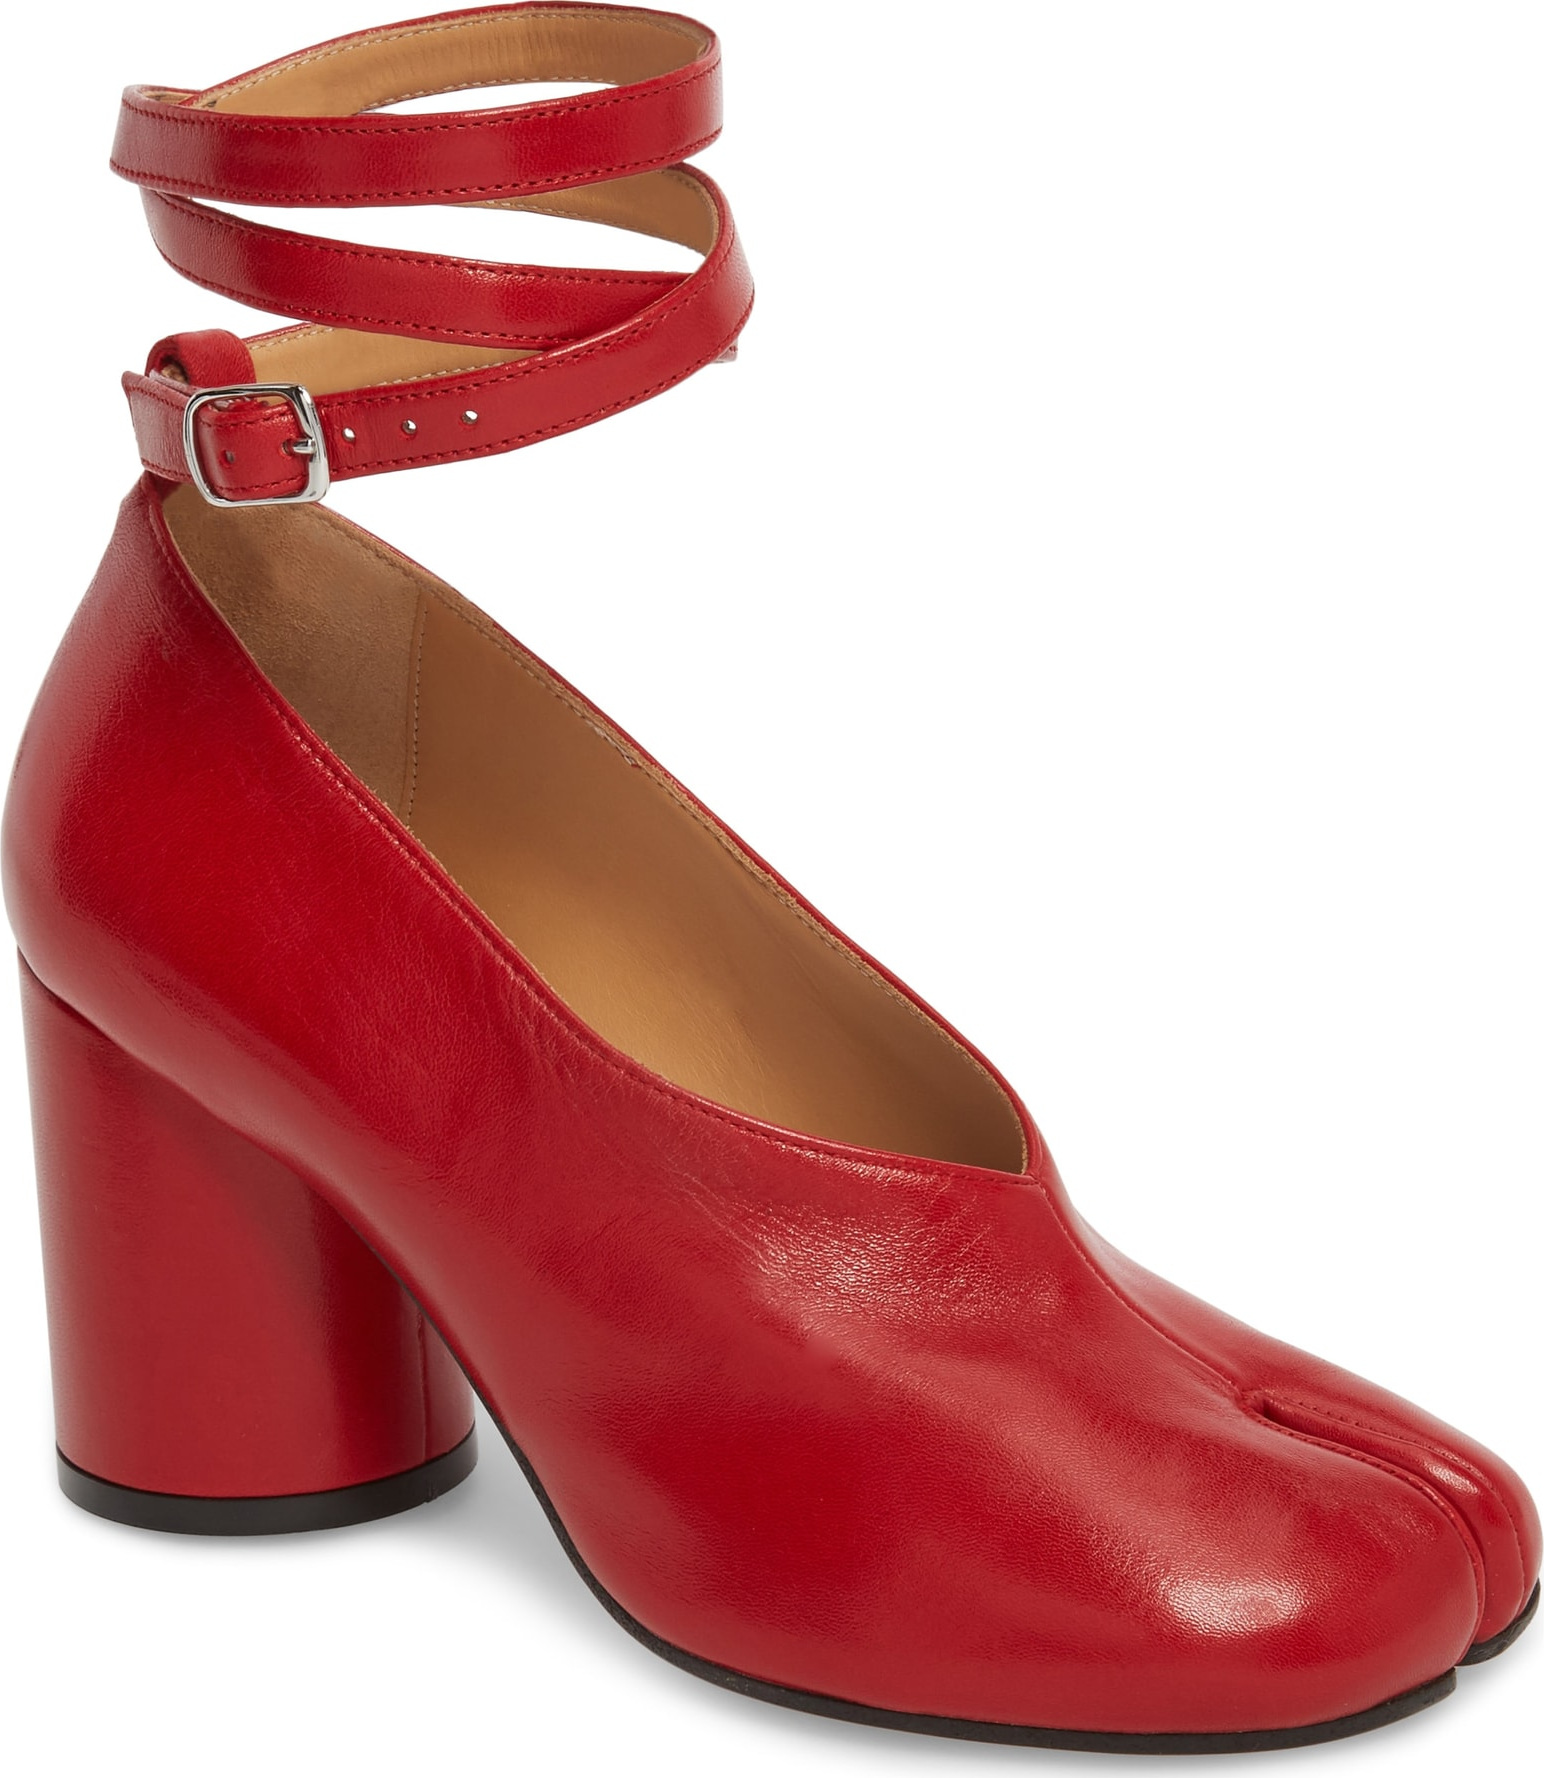 371f9f1cfb9 Maison Margiela Tabi Ankle Strap Pump in Red - Mkt